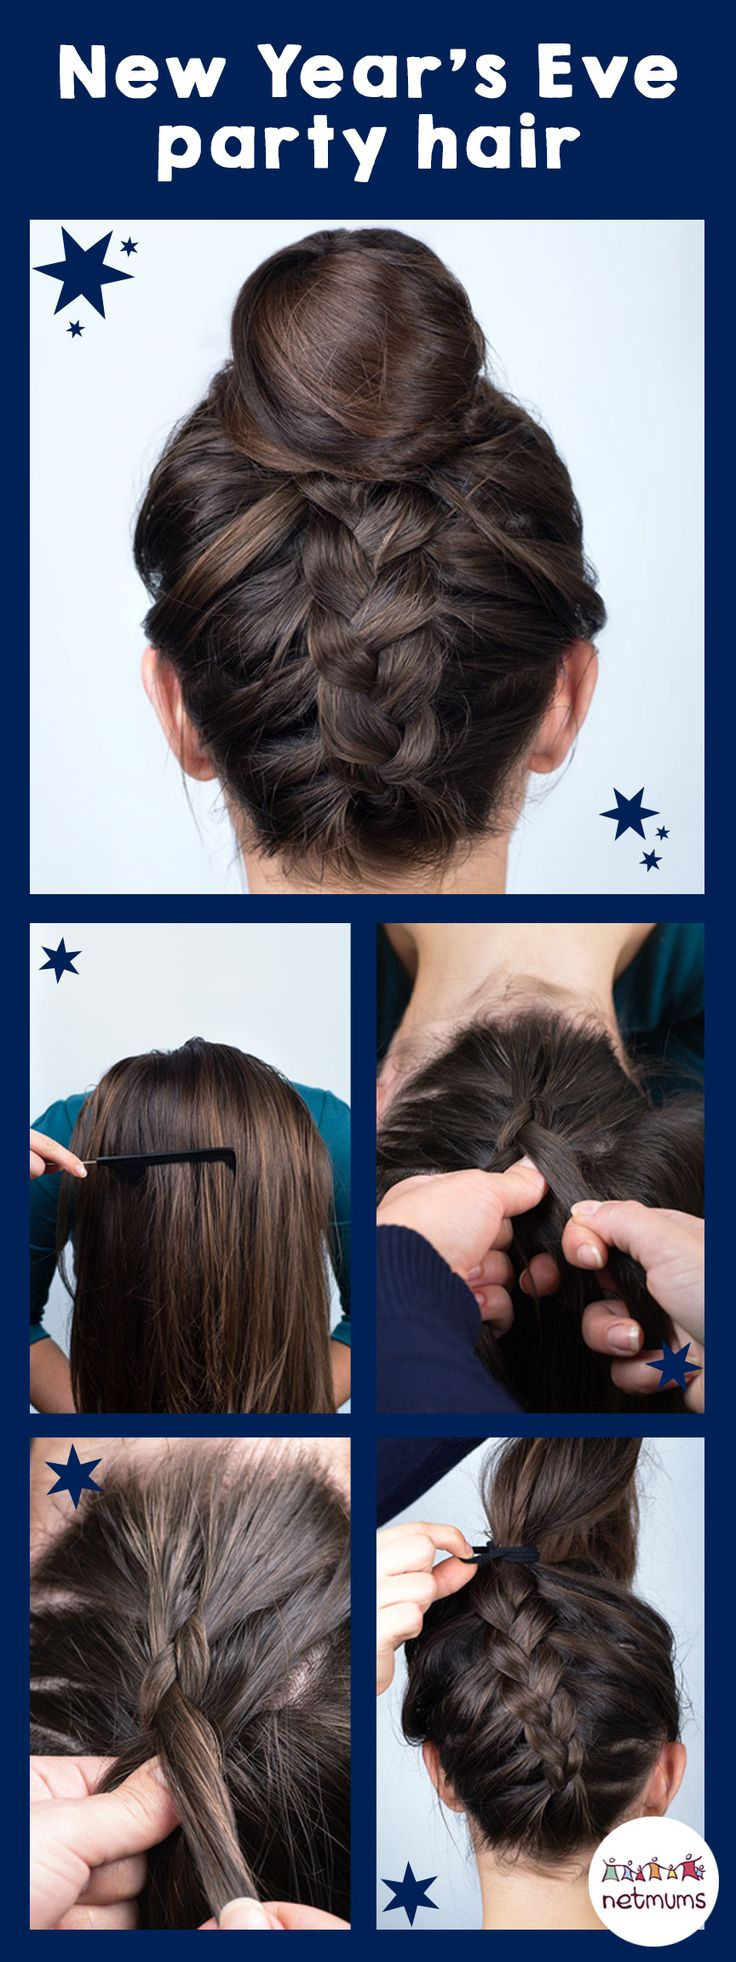 New Year's Eve hair inspiration. If you're looking for hair ideas for New Year's Eve, why not try this easy tutorial.